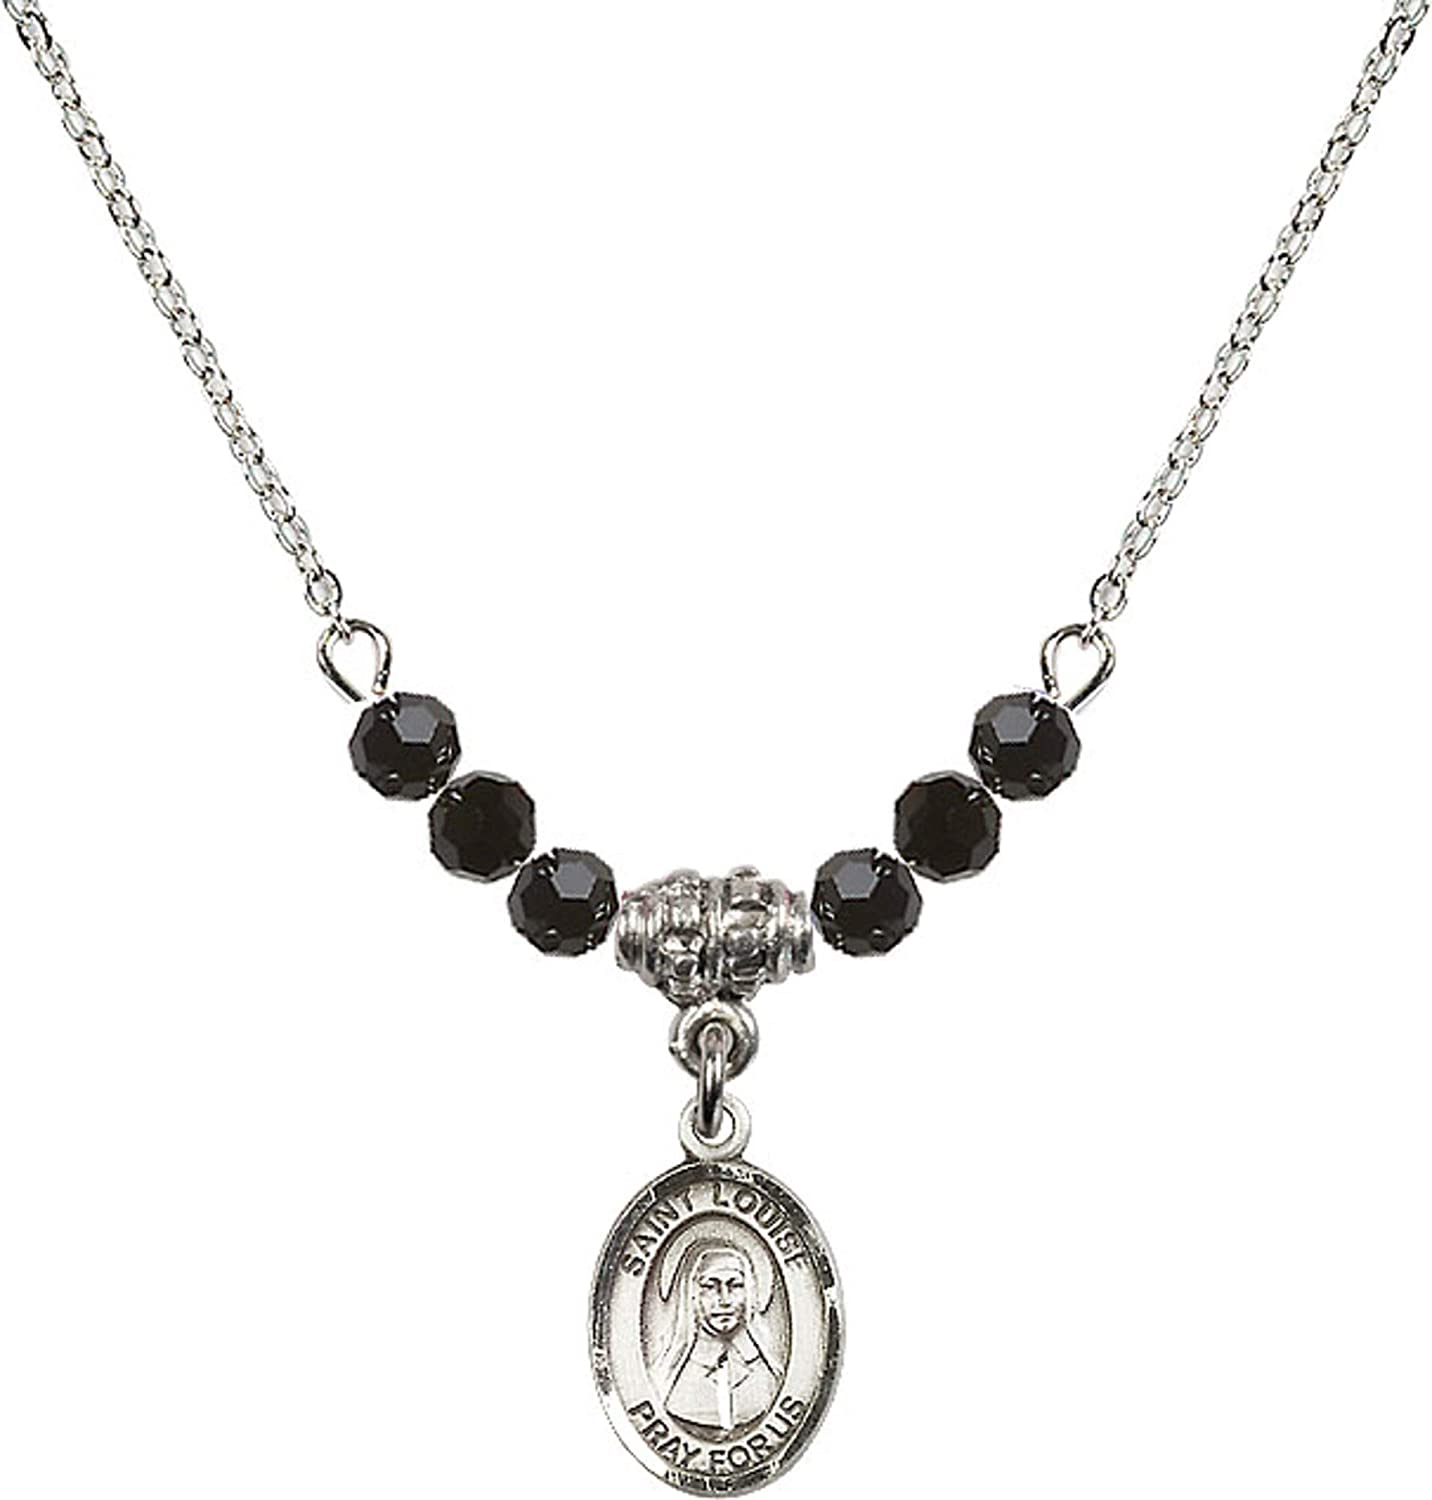 Bonyak Jewelry 18 Inch Rhodium Plated Necklace w// 4mm Jet Birth Month Stone Beads and Saint Louise de Marillac Charm